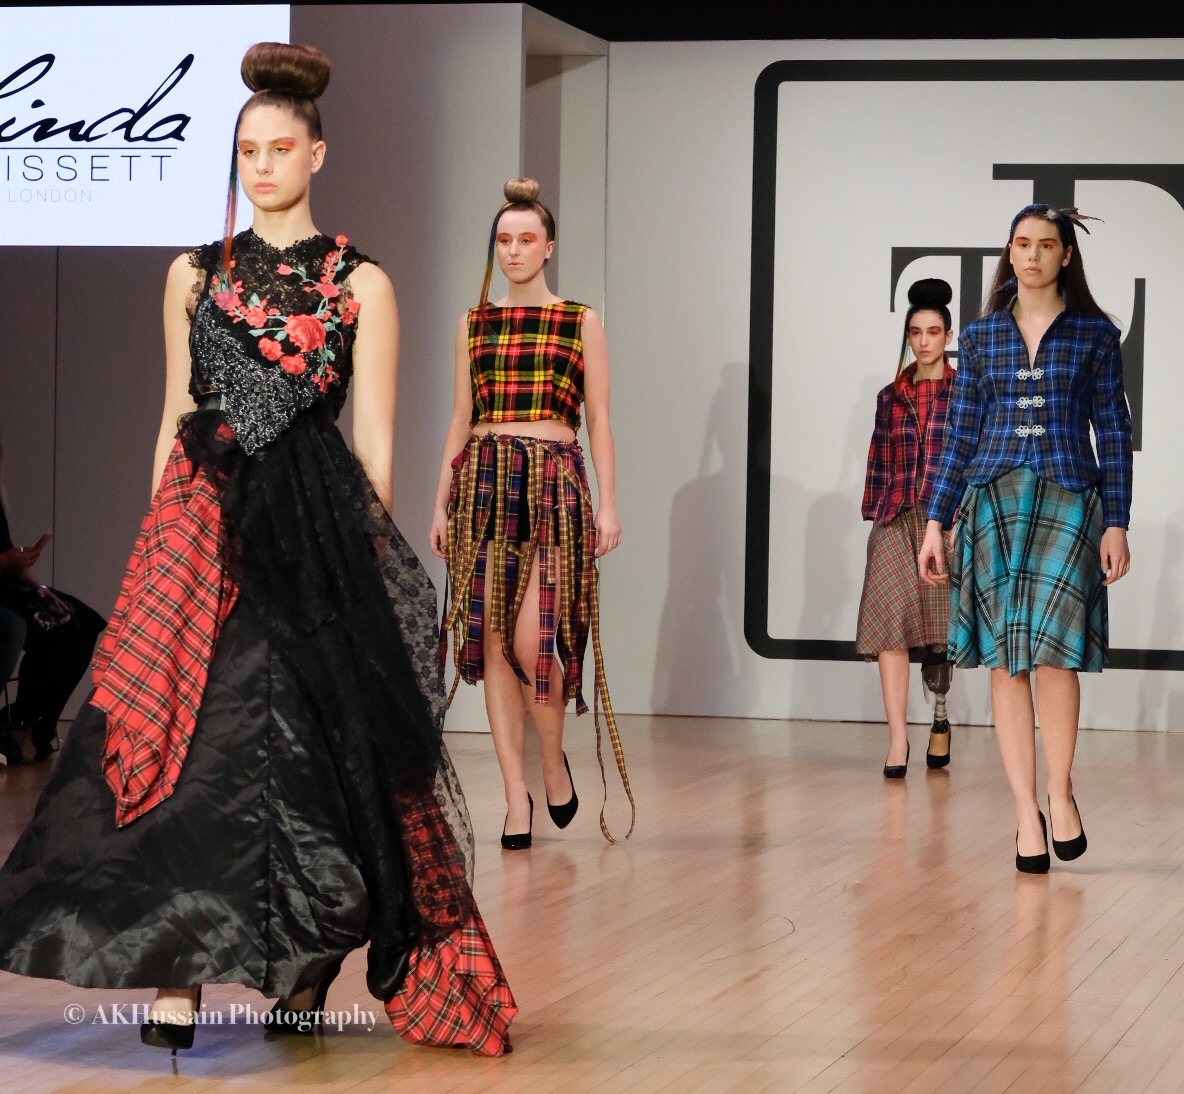 LINDA BASSETT - Variety of dresses with quirky styles loved the element of The scottish feel